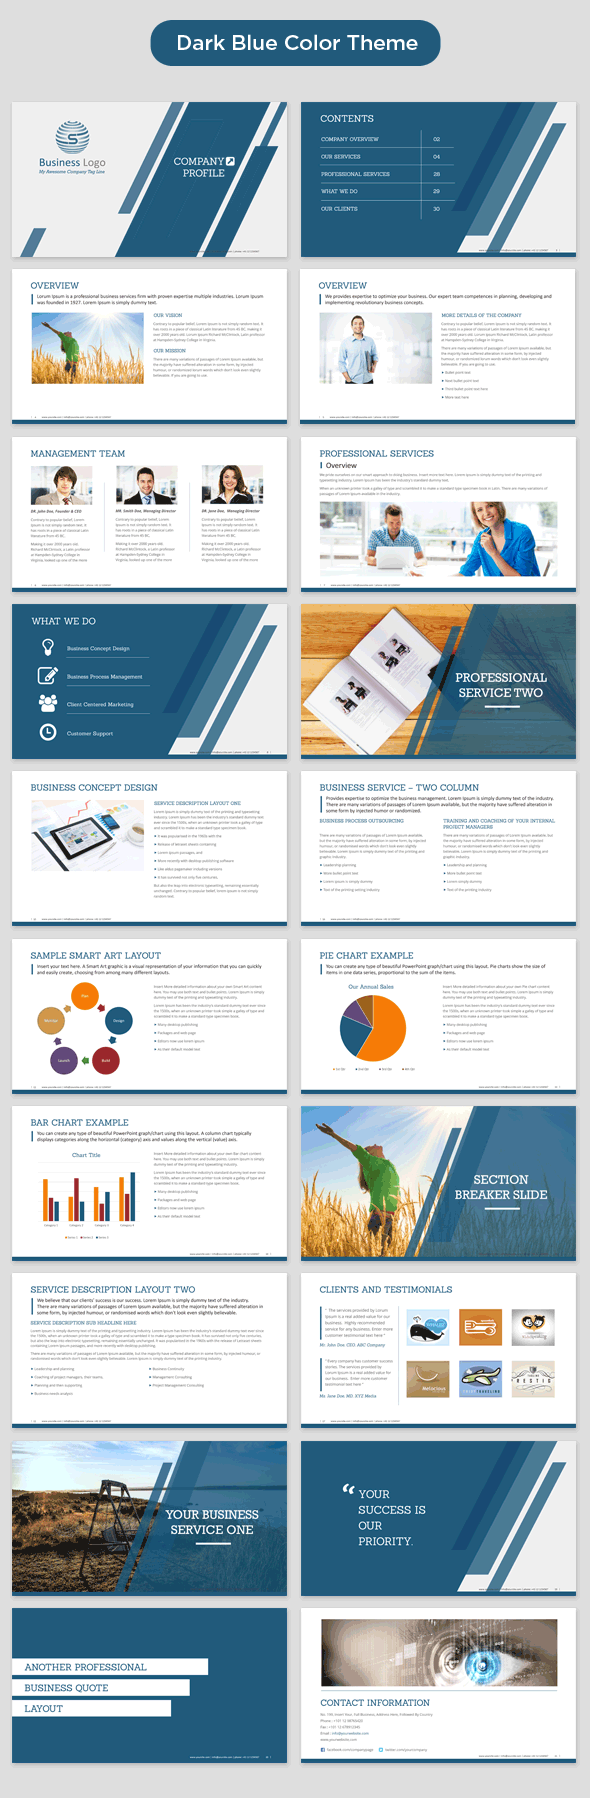 Company profile powerpoint template 350 master slide templates company profile powerpoint template dark blue preview toneelgroepblik Gallery